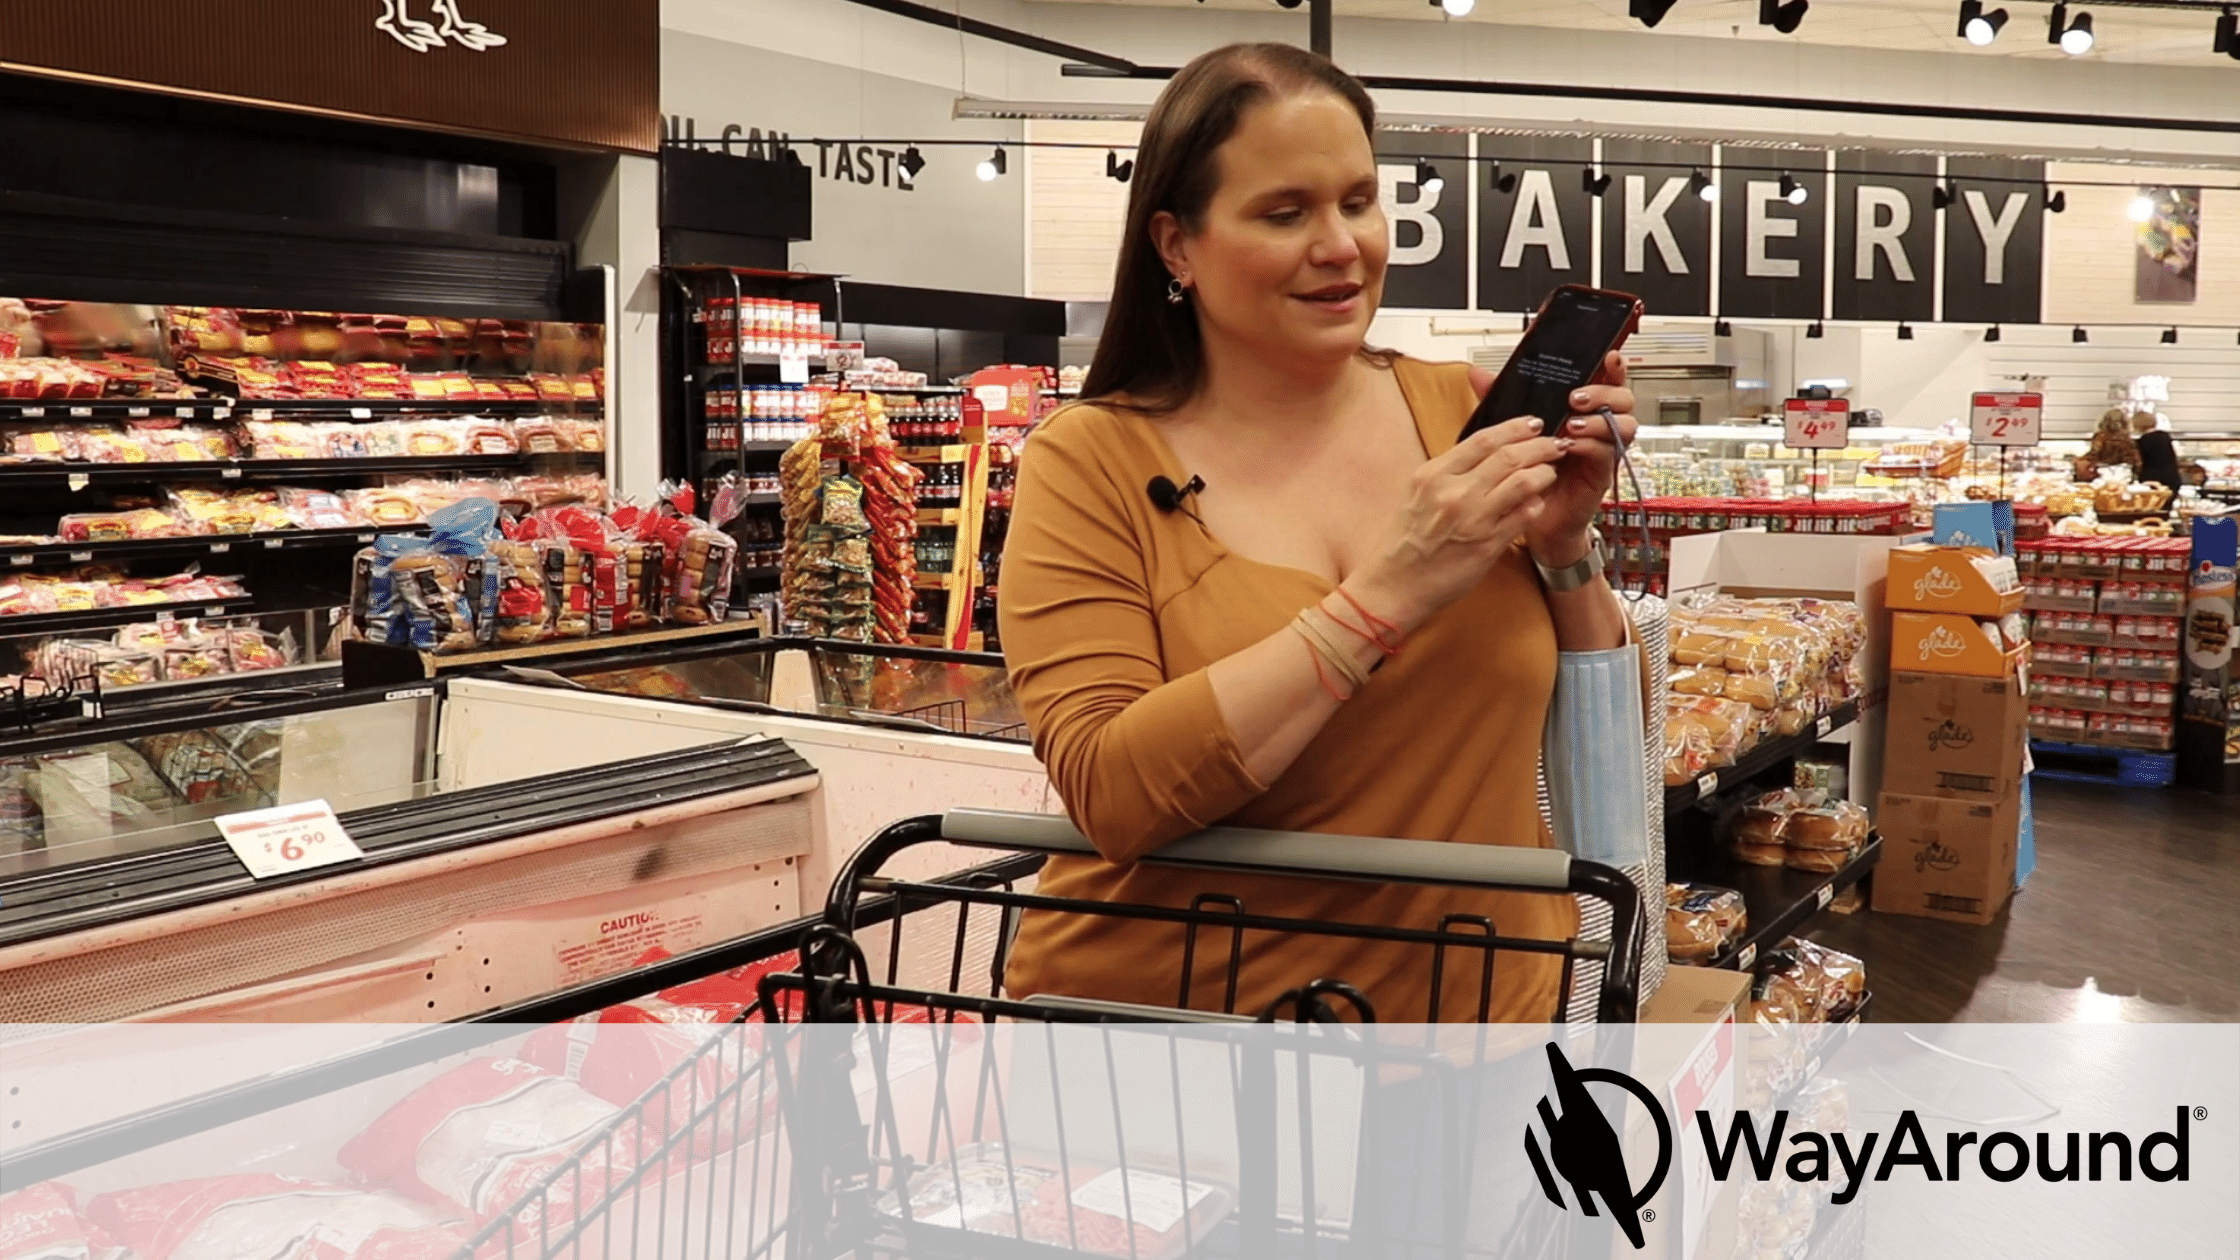 A woman leans on a shopping cart. She is looking at her phone. A sign in the background says Bakery.